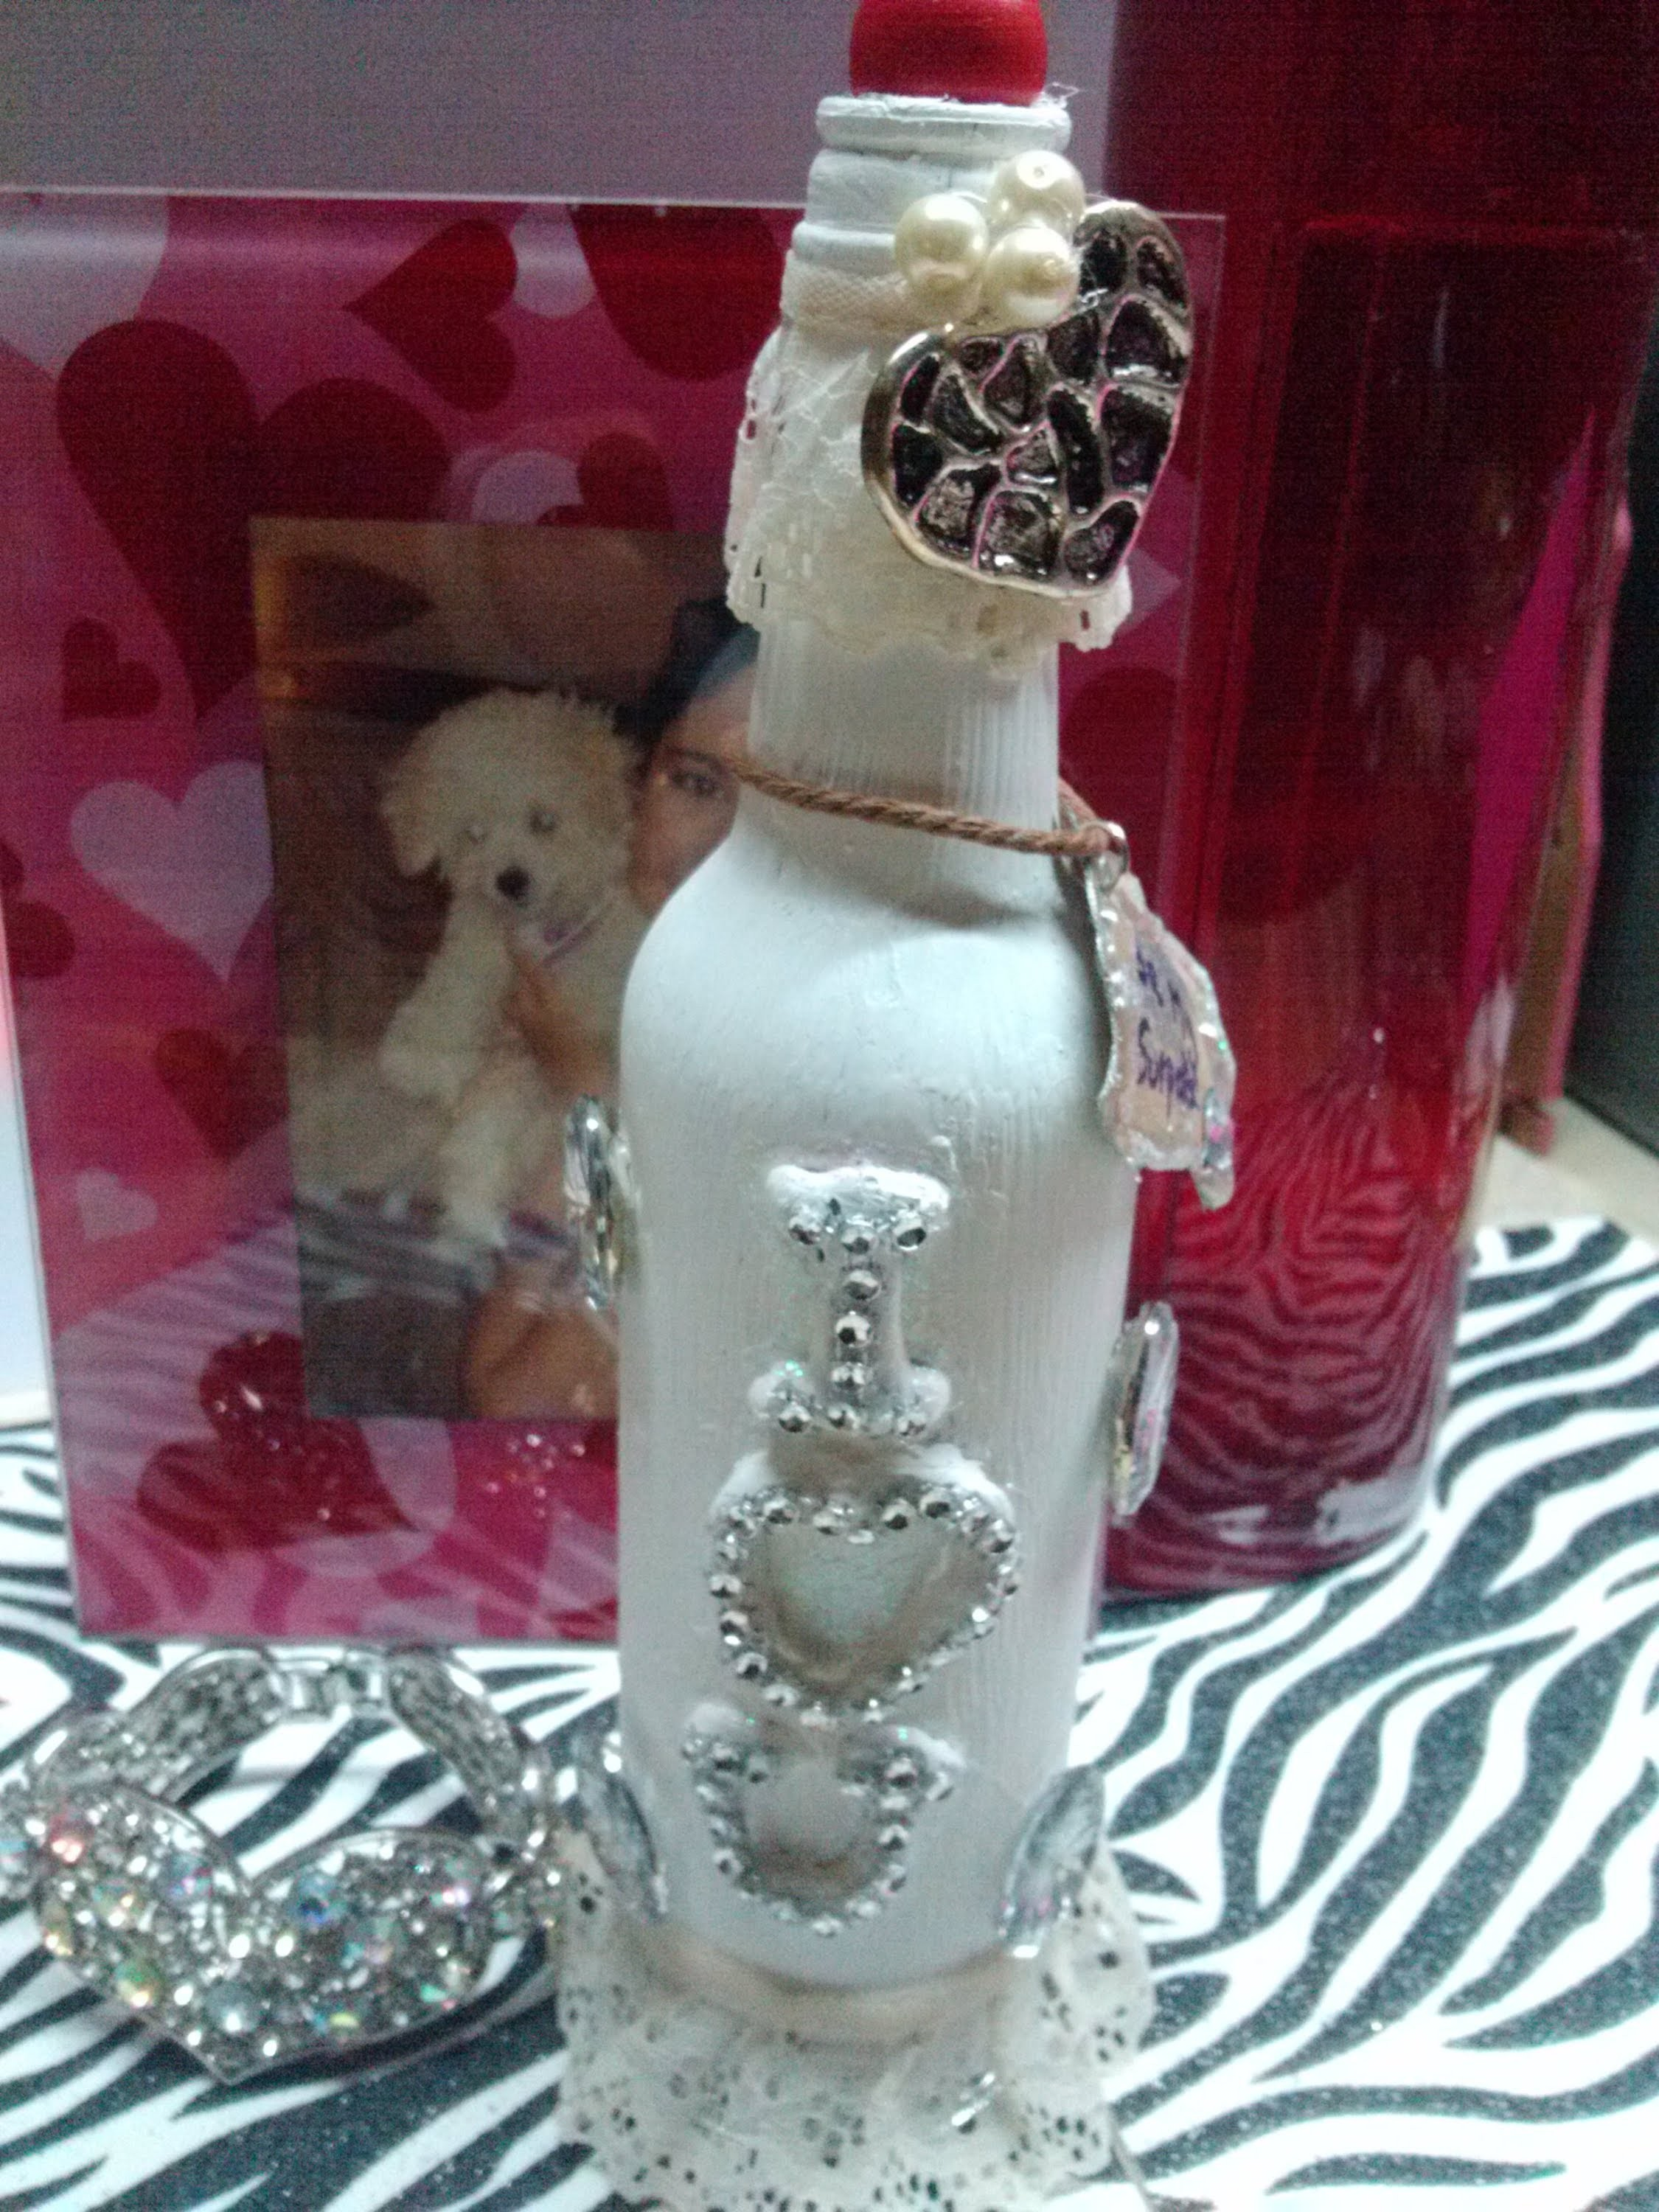 DIY Botella Sorpresa. Surprise Bottle. Valentine's Day. Amor y amistad